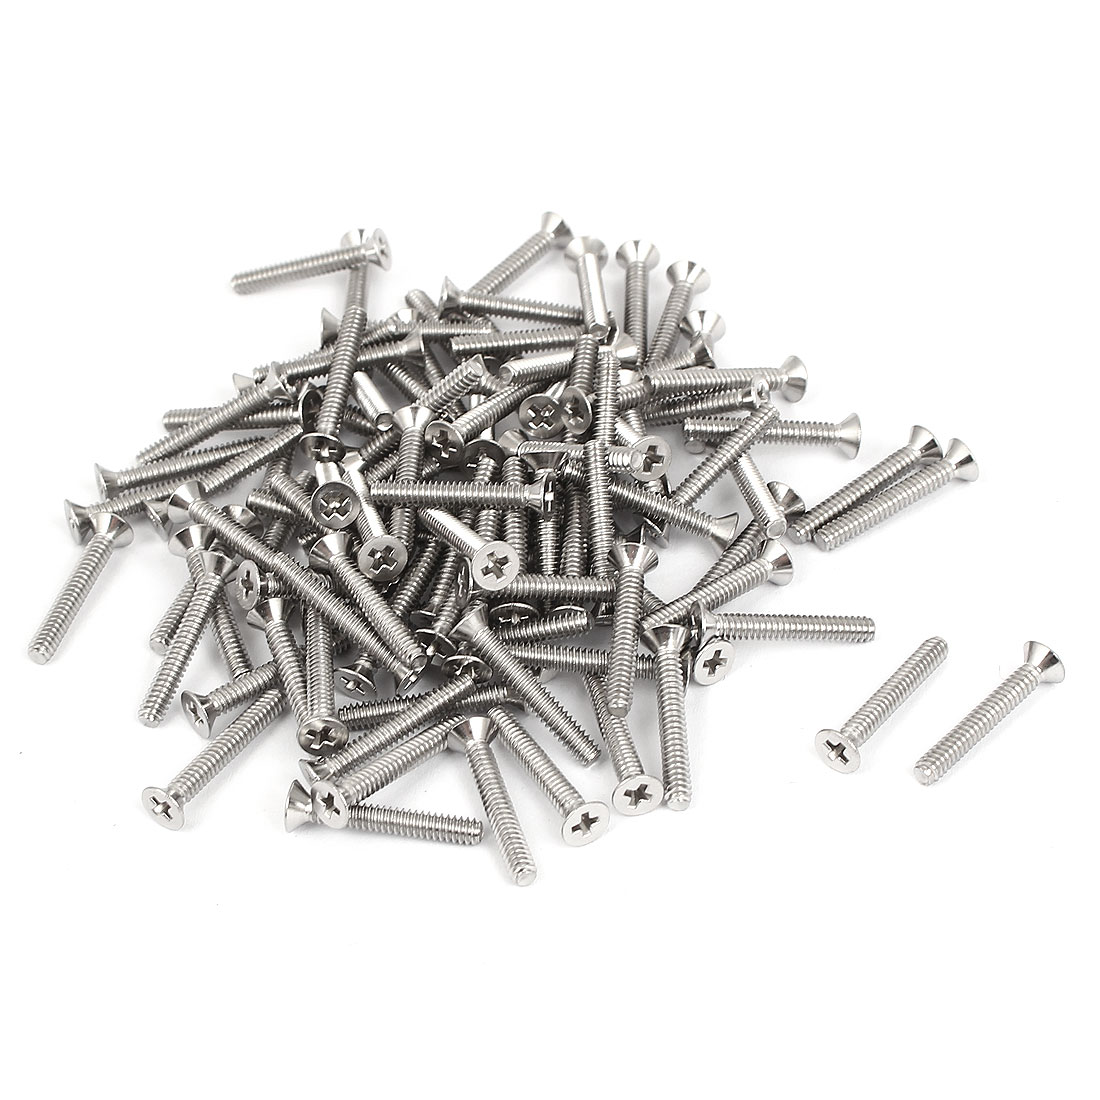 "4#-40x3/4"" Stainless Steel Phillips Flat Countersunk Head Screws 100pcs"